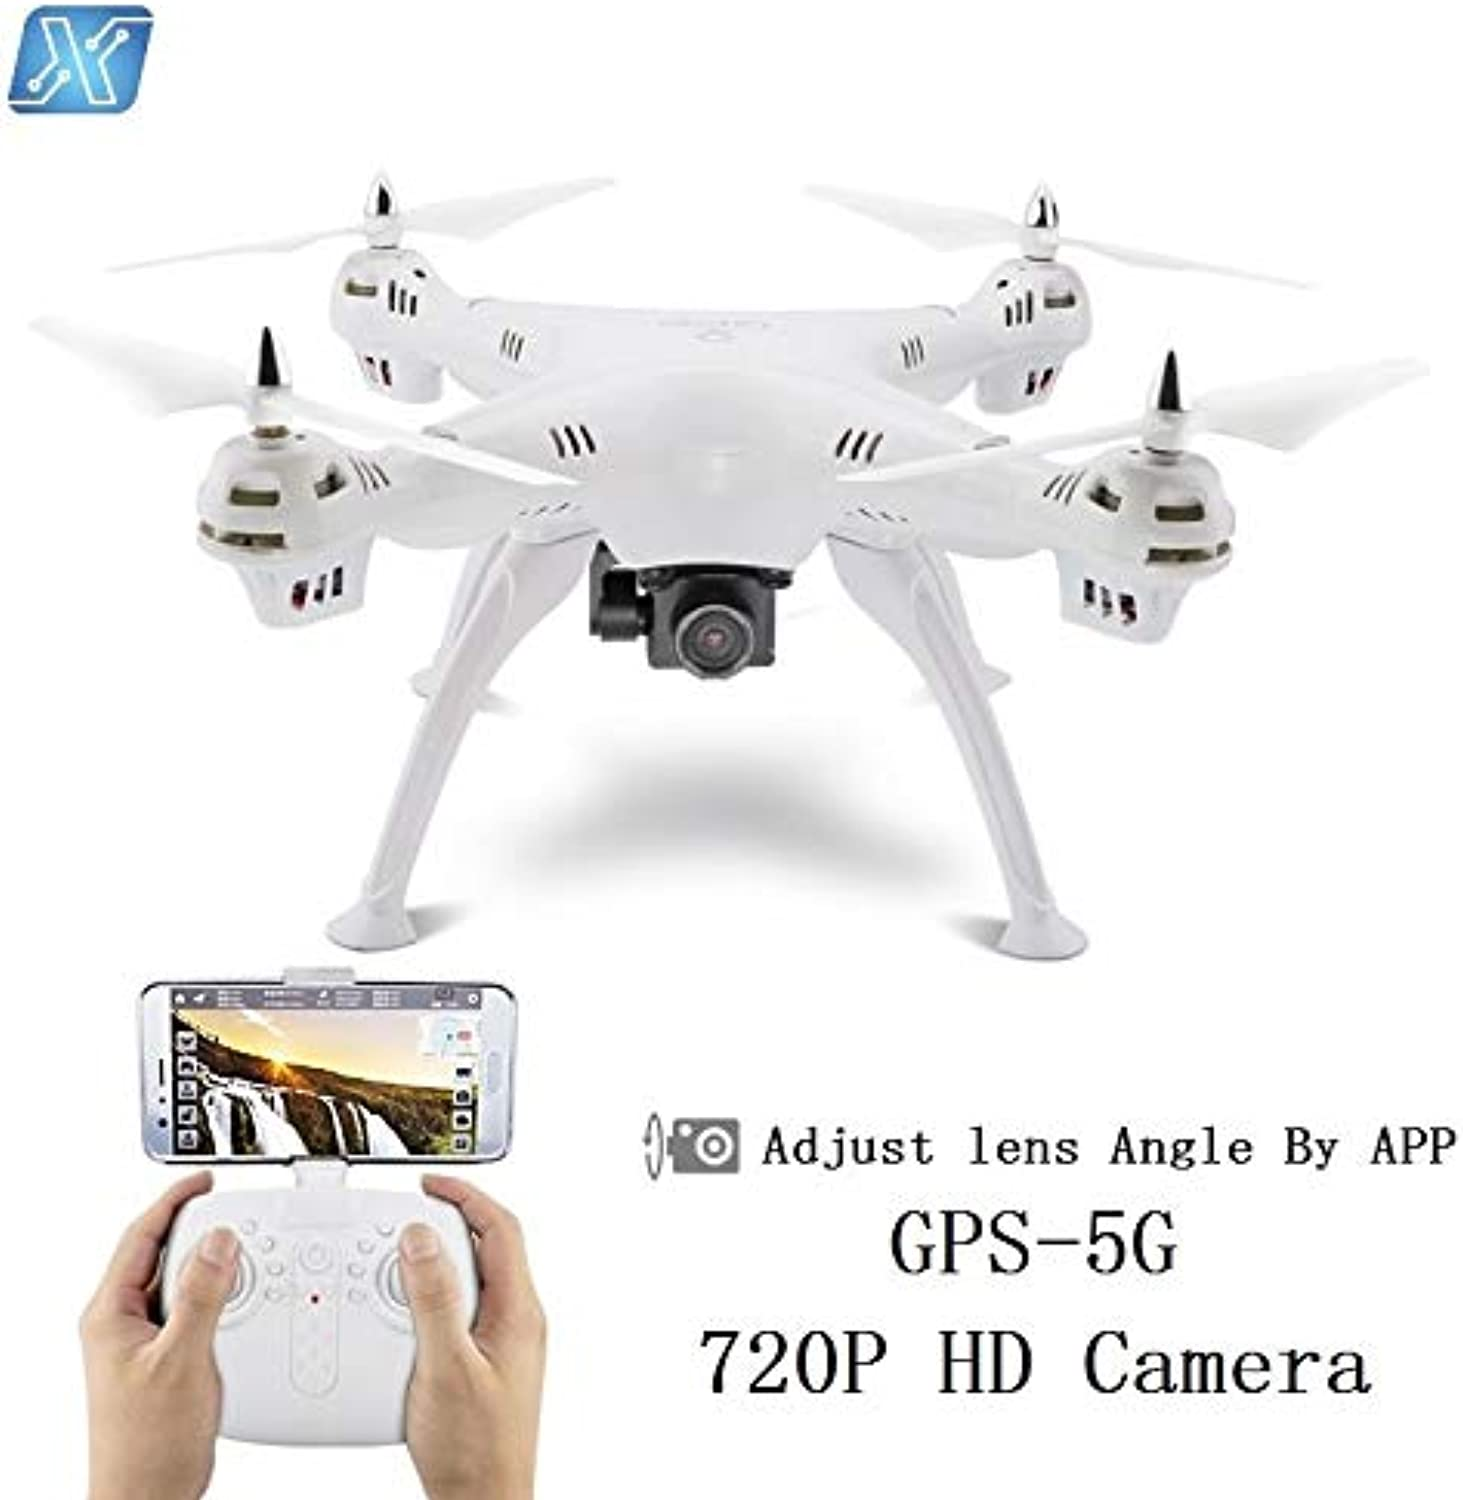 Generic GPS DRON WiFi FPV with 720P 1080P 4K HD Camera or Realtime Follow Me Drone 6Axis Altitude Hold RC Quadcopter Red